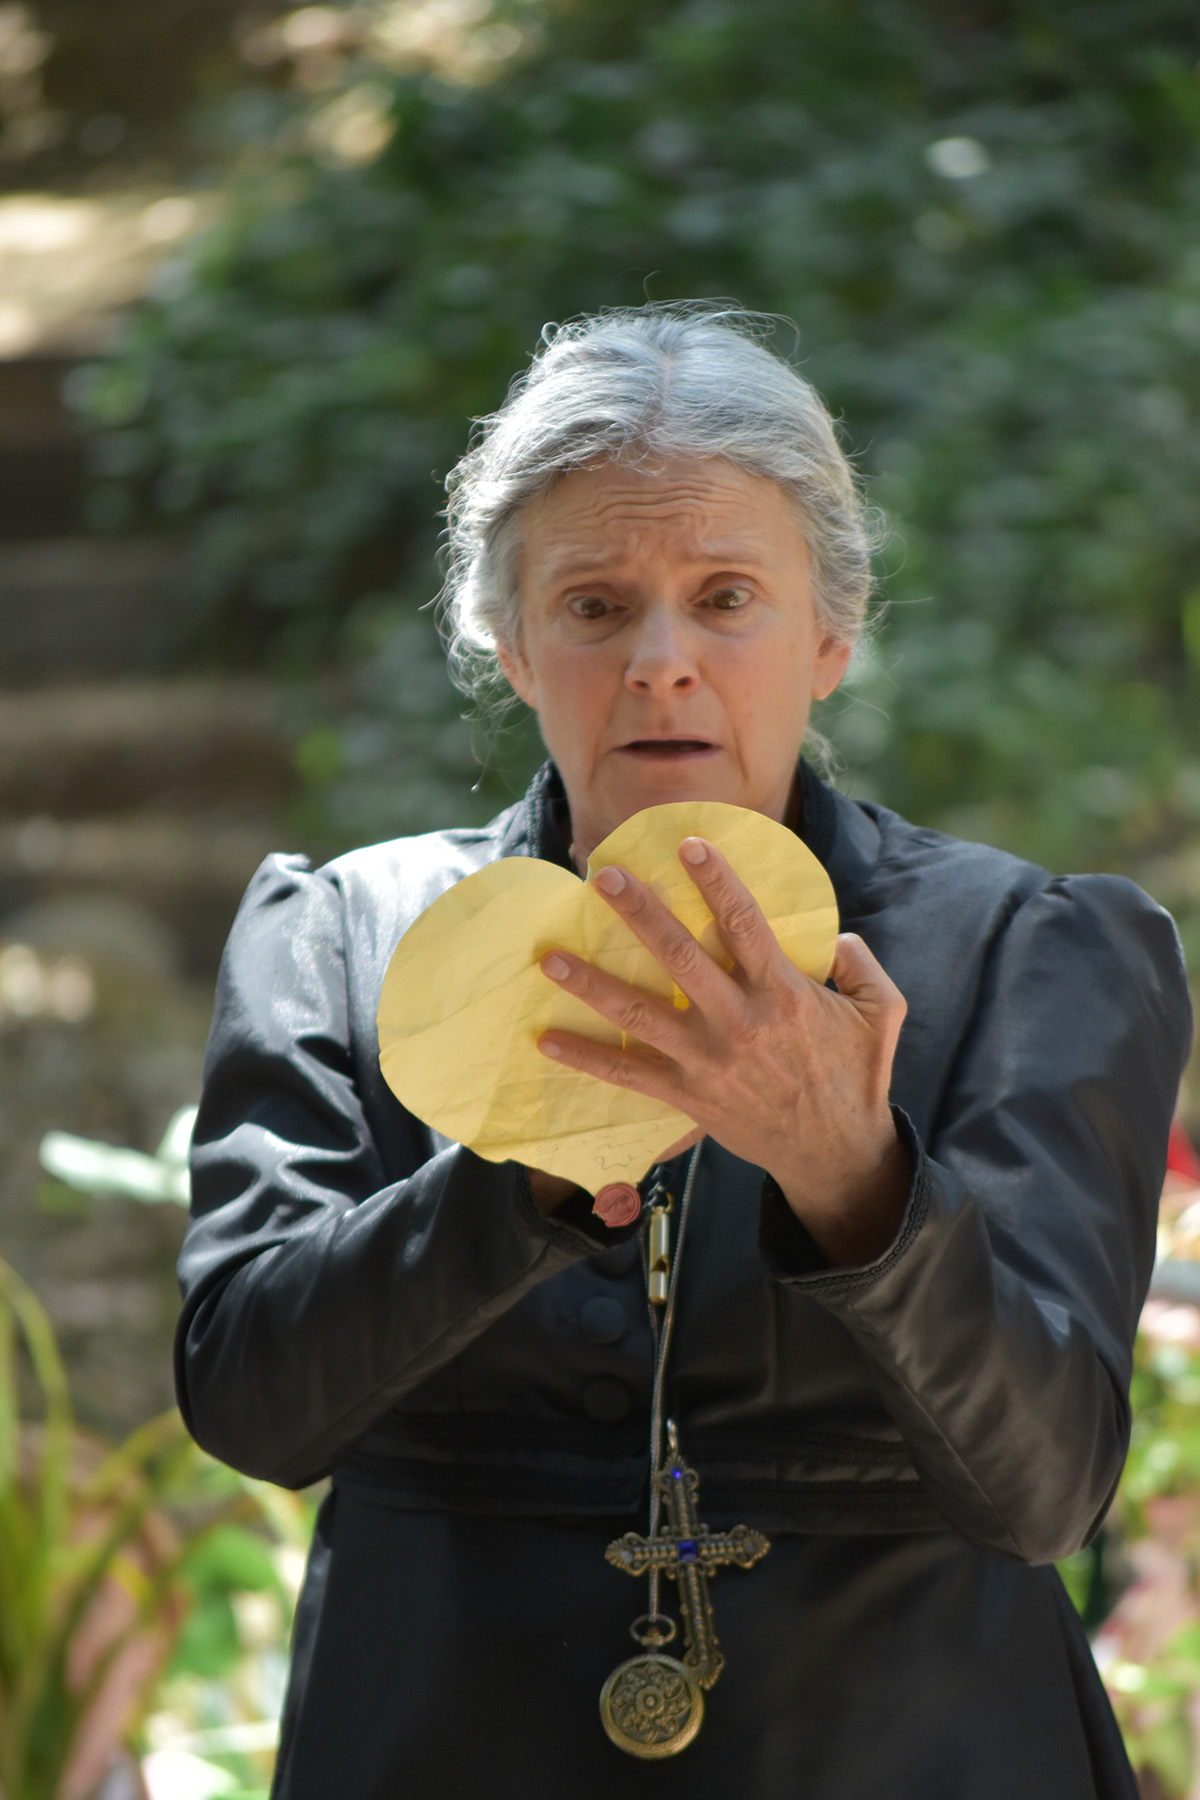 Malvolio, played by actress Melora Marshall, reads a heart-shaped letter in 'Twelfth Night' at Will Geer's Theatricum Botanicum